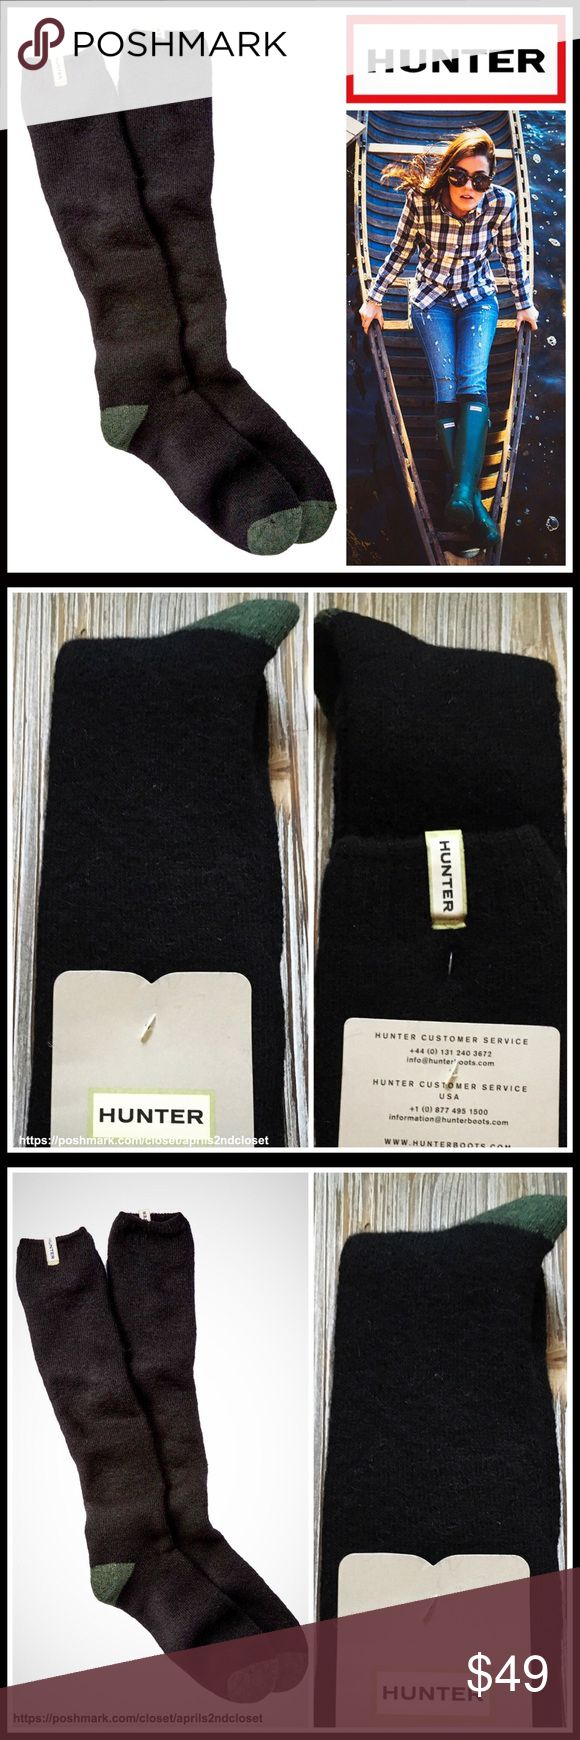 HUNTER ORIGINAL Tall Boot Socks 💟 NEW WITH TAGS 💟  HUNTER ORIGINAL Tall Boot Socks  * Super soft, cozy & comfortable fabric * Wool blend construction w/knit construction * Stretch-to-fit; Logo detail * One size fits many, approx shoes sizes 5.5-11, tall knee high boot length * Designed for 'Hunter Original Tall Rain Boot' Fabric- 13% nylon, 16% acrylic, 17% wool, 23% viscose, 29% polyester, 1% cotton, 1% elastane; Machine wash Item# Color-Black  🚫No Trades🚫 ✅Bundle Discounts✅ Hunter…